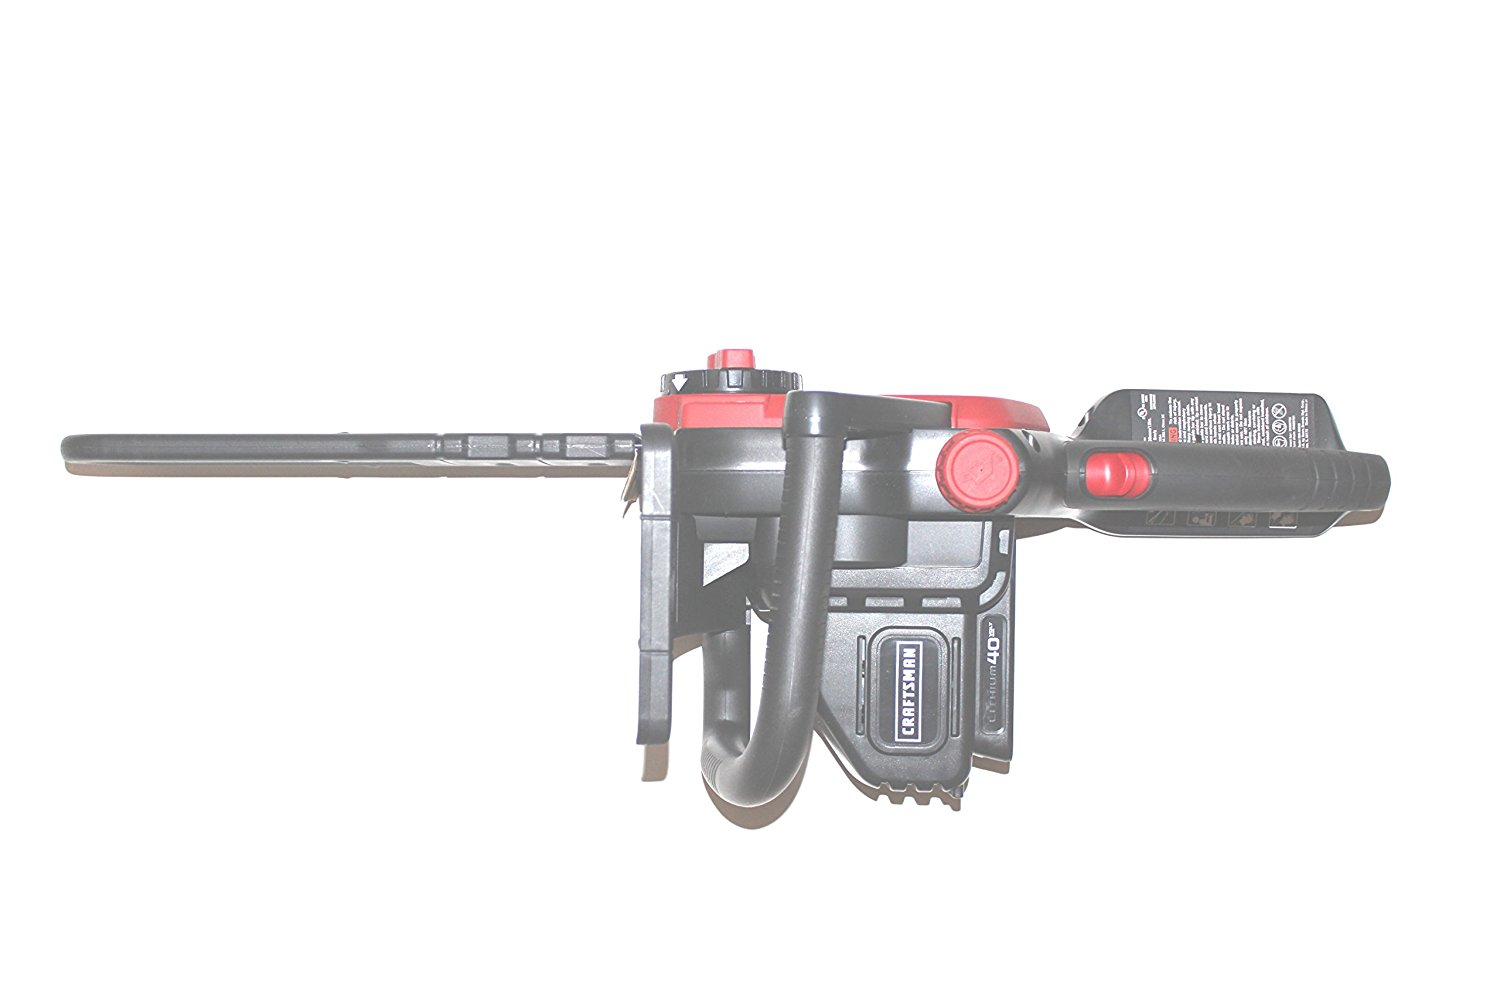 Cheap Craftsman Chainsaw Parts Diagram Find Engine Get Quotations Sears 40 Volt 40v Max Lithium 12 Inch Chain Saw Tool Only